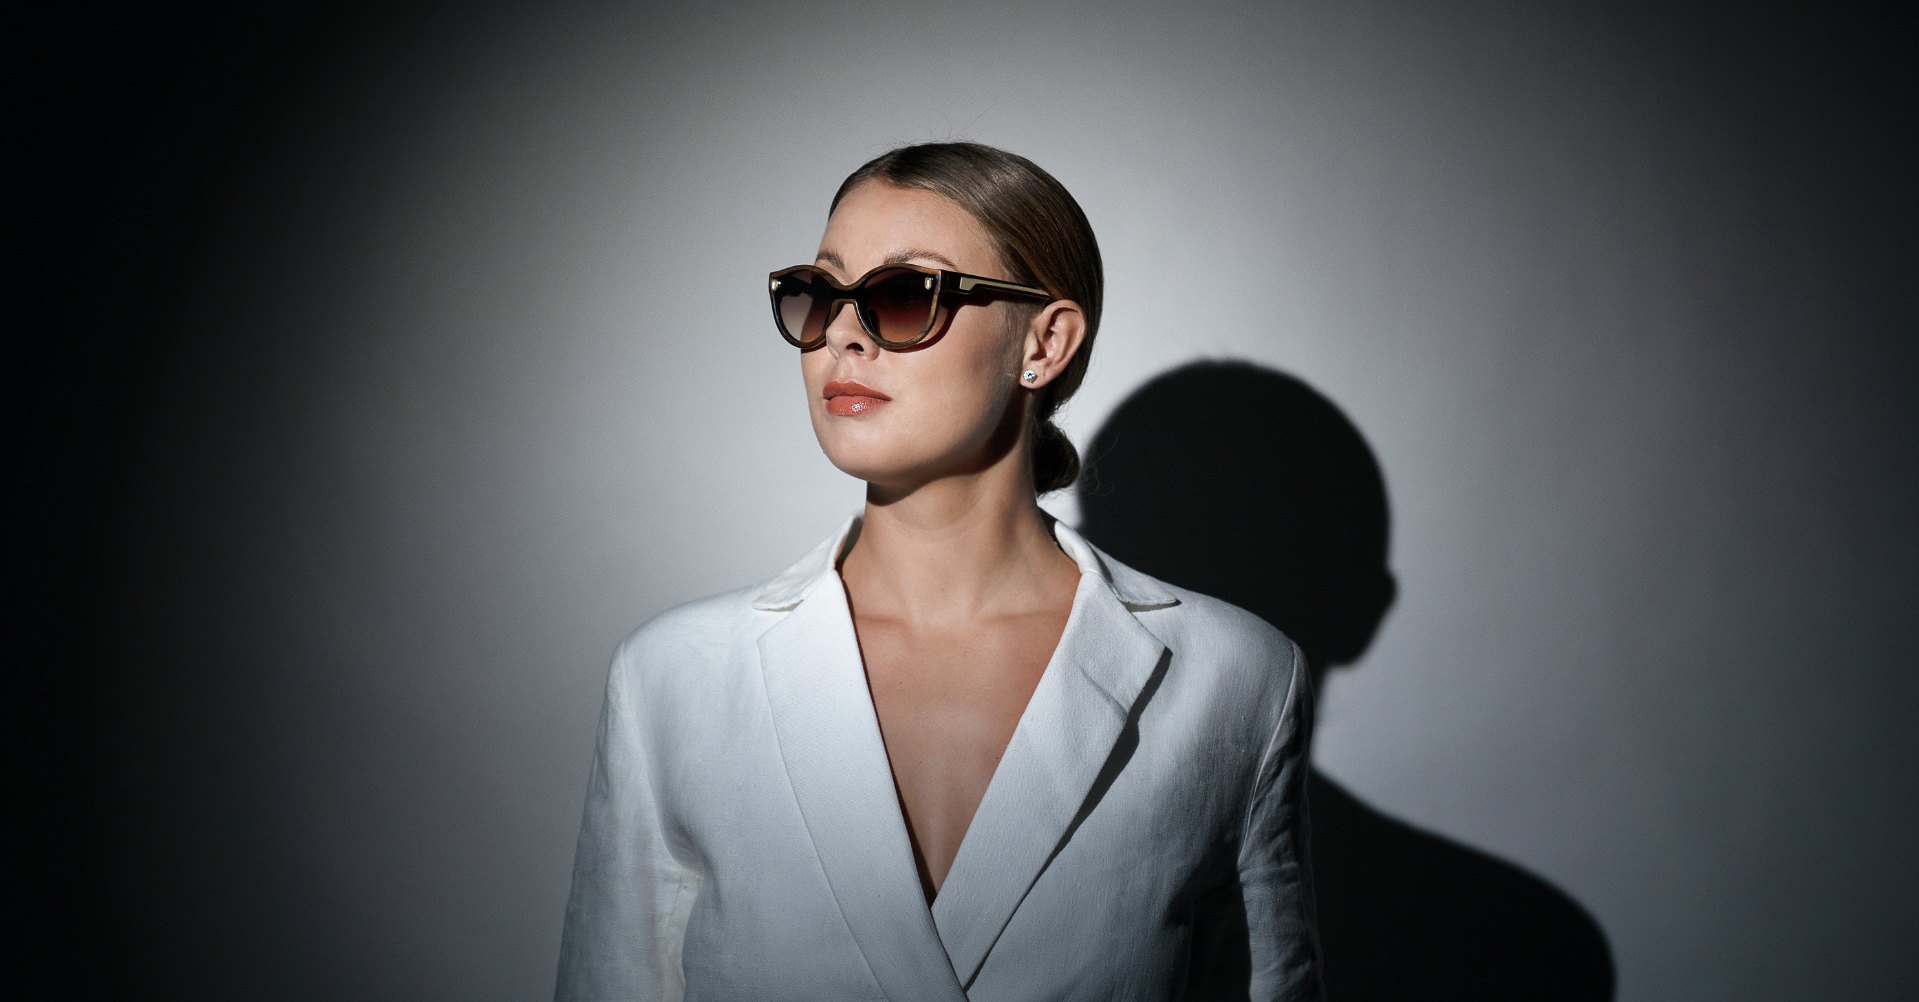 The Sunglasses Collection - Sunglasses Collection by 1 People